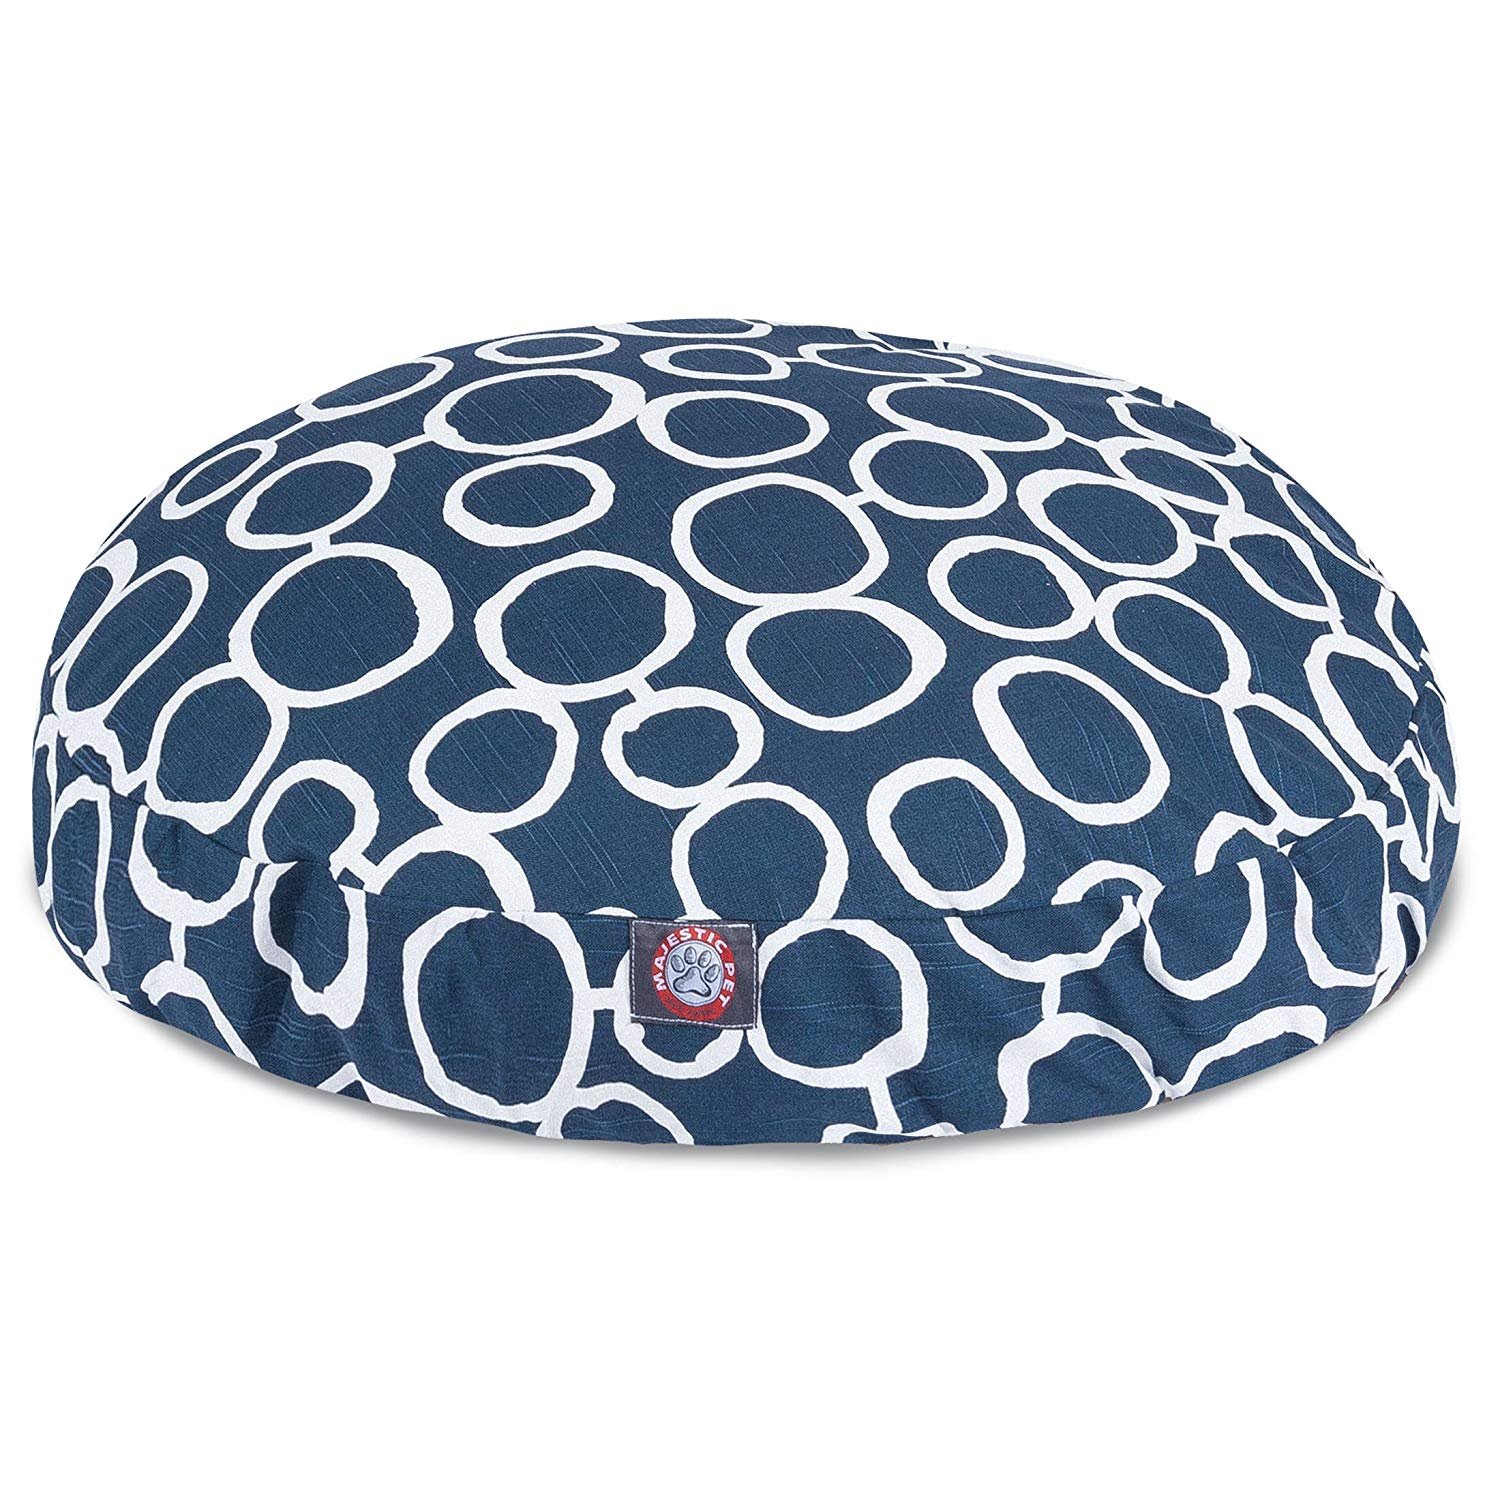 CU Large Navy Blue Circular Links Pattern Dog Bed, Beautiful Geometric Circles Print Pet Bedding, Round Shape, Features Water, Stain Resists, Removable Cover, Soft & Comfy Design, Cotton